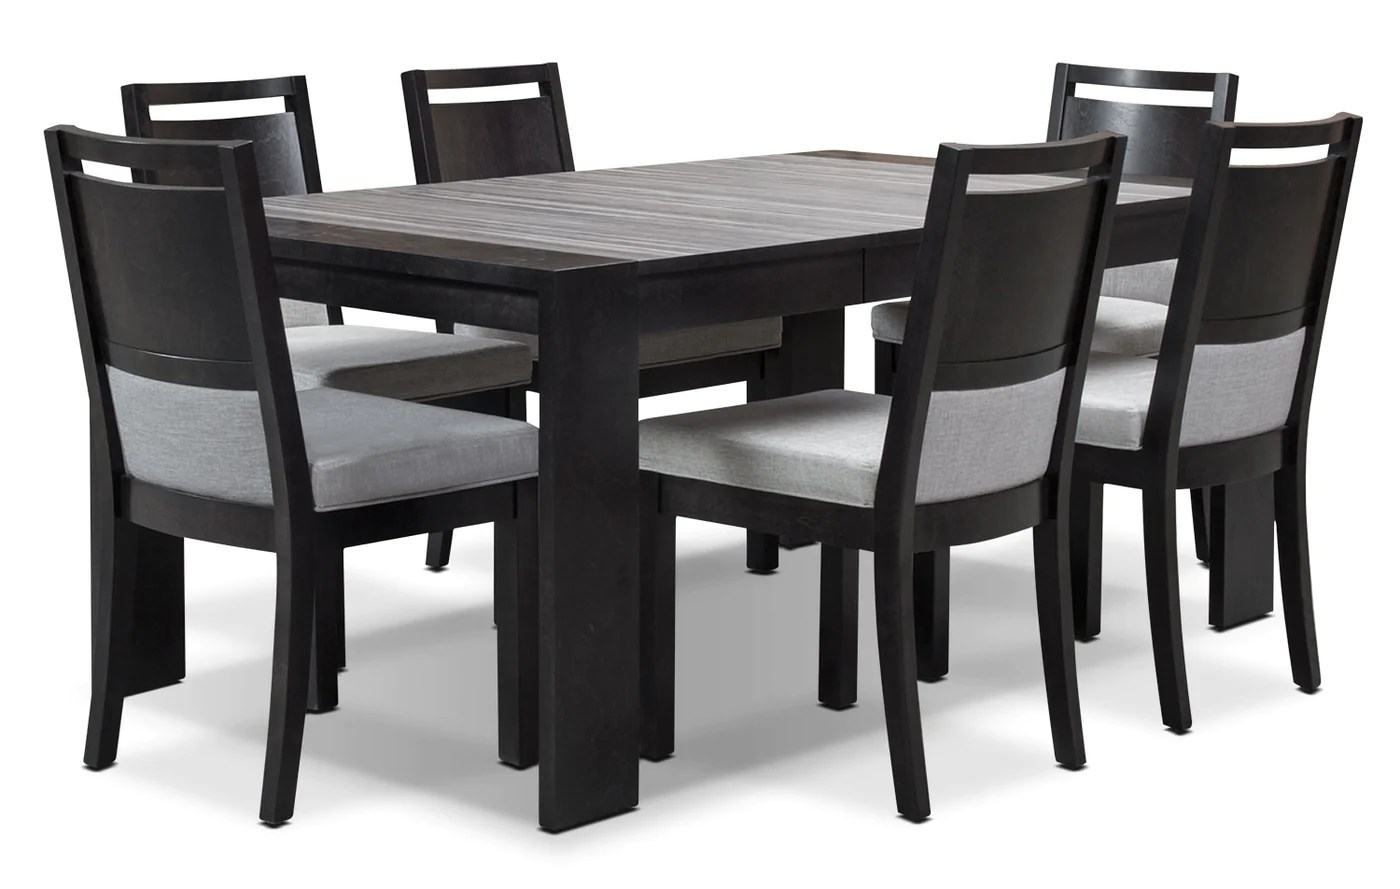 Black Dining Room Table And Chairs Khala 7 Piece Dining Room Set Espresso